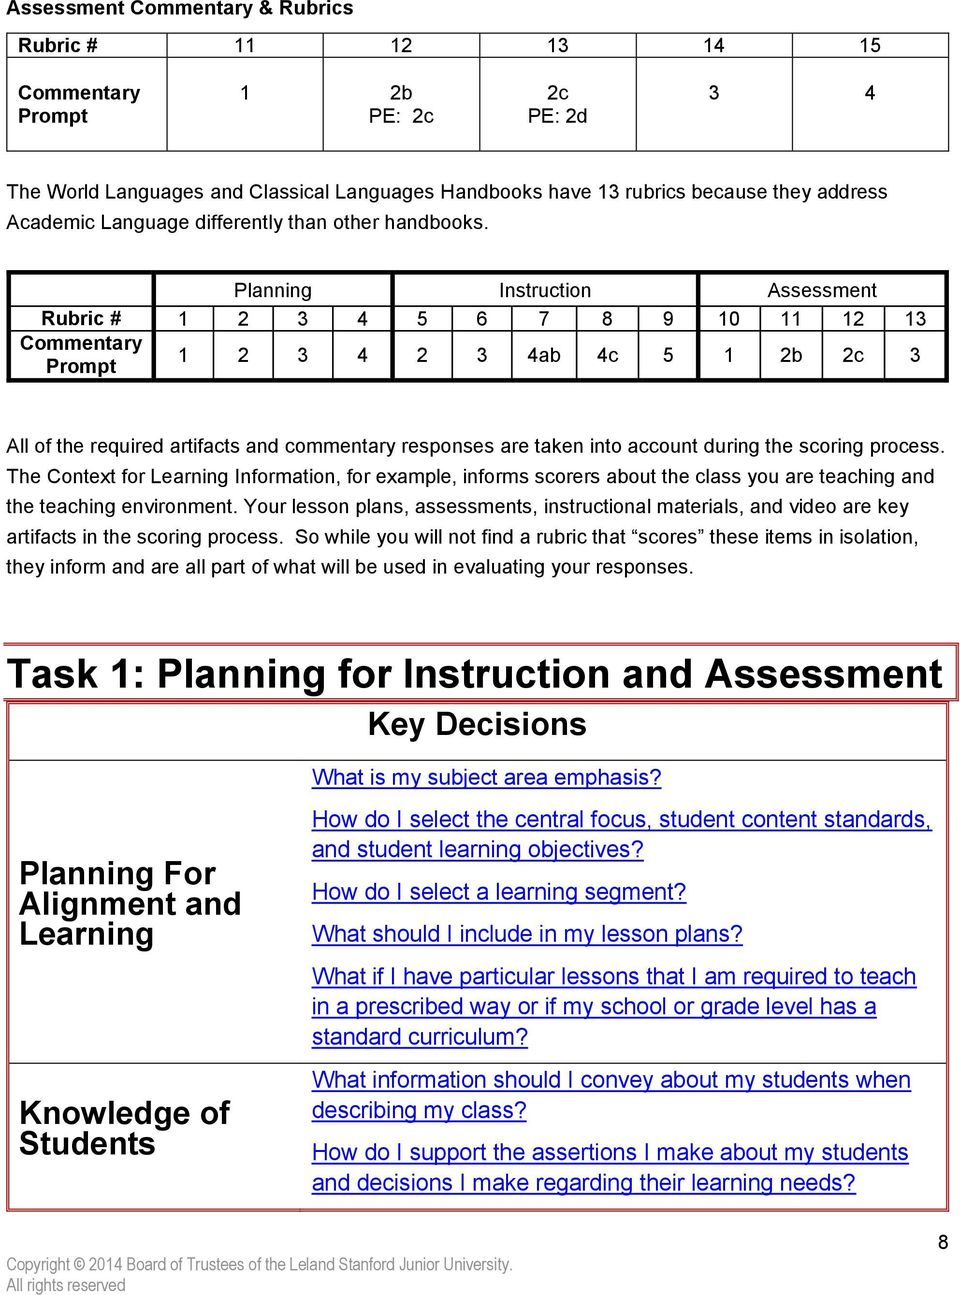 Planning Instruction Assessment Rubric # 1 2 3 4 5 6 7 8 9 10 11 12 13 Commentary Prompt 1 2 3 4 2 3 4ab 4c 5 1 2b 2c 3 All of the required artifacts and commentary responses are taken into account